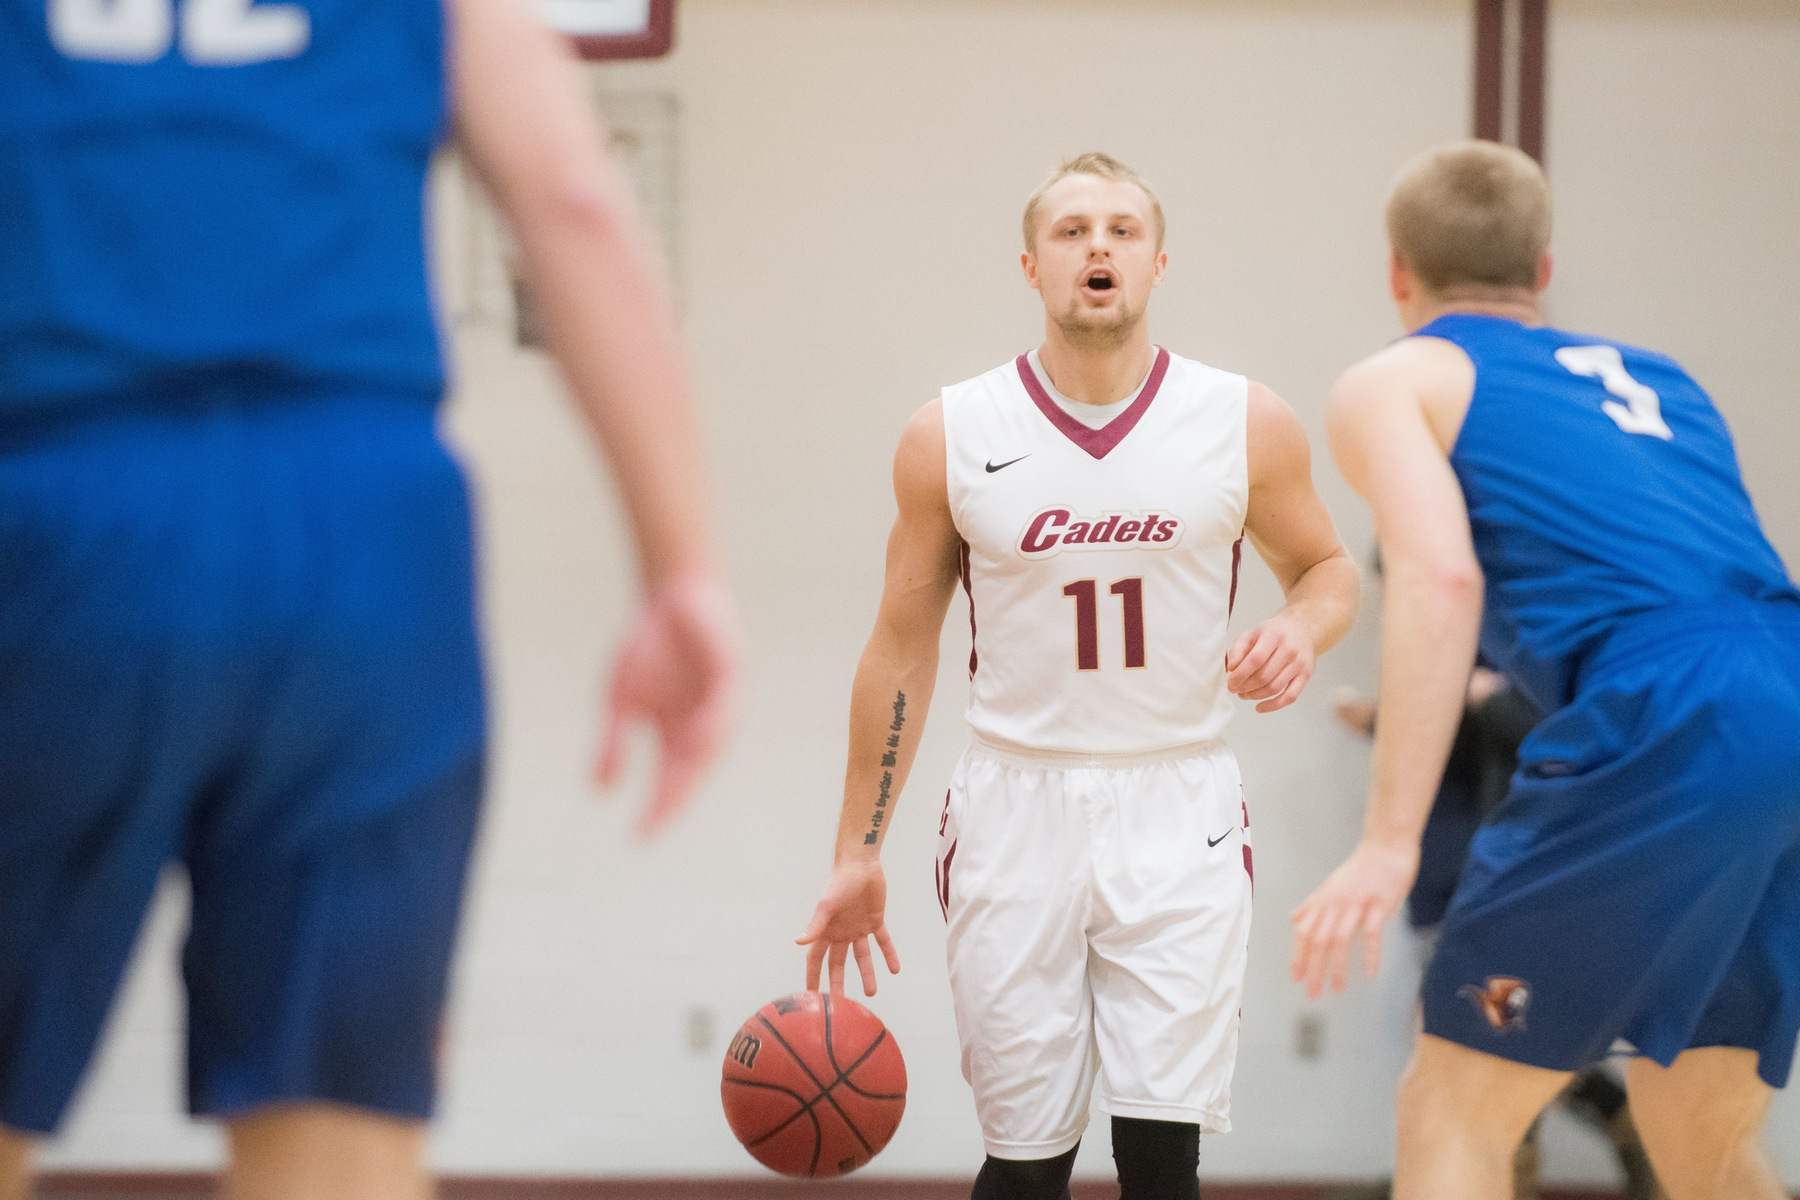 Men's Basketball: Cadets Drop GNAC Contest to Suffolk, 83-66